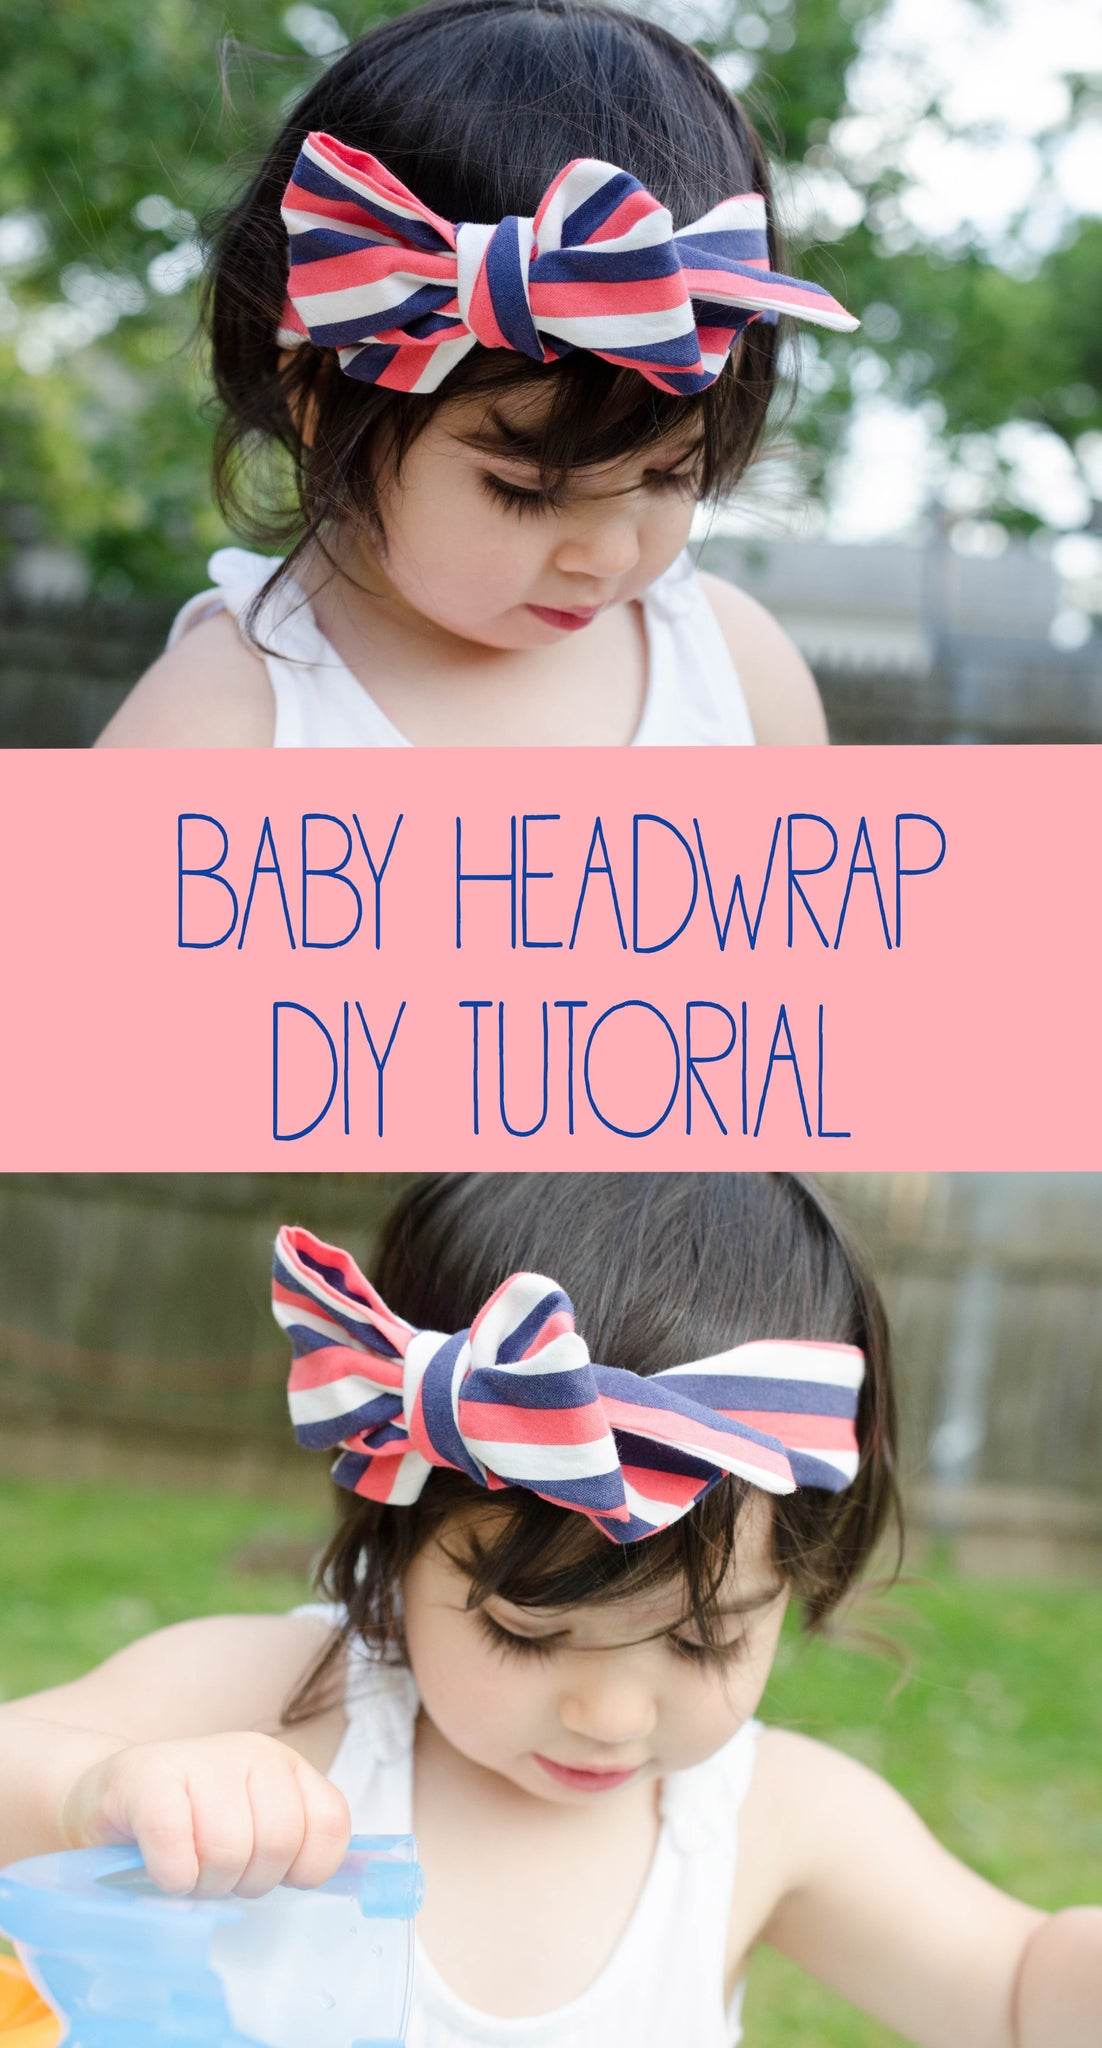 Summer Headwrap Tutorial for Infants and Toddlers